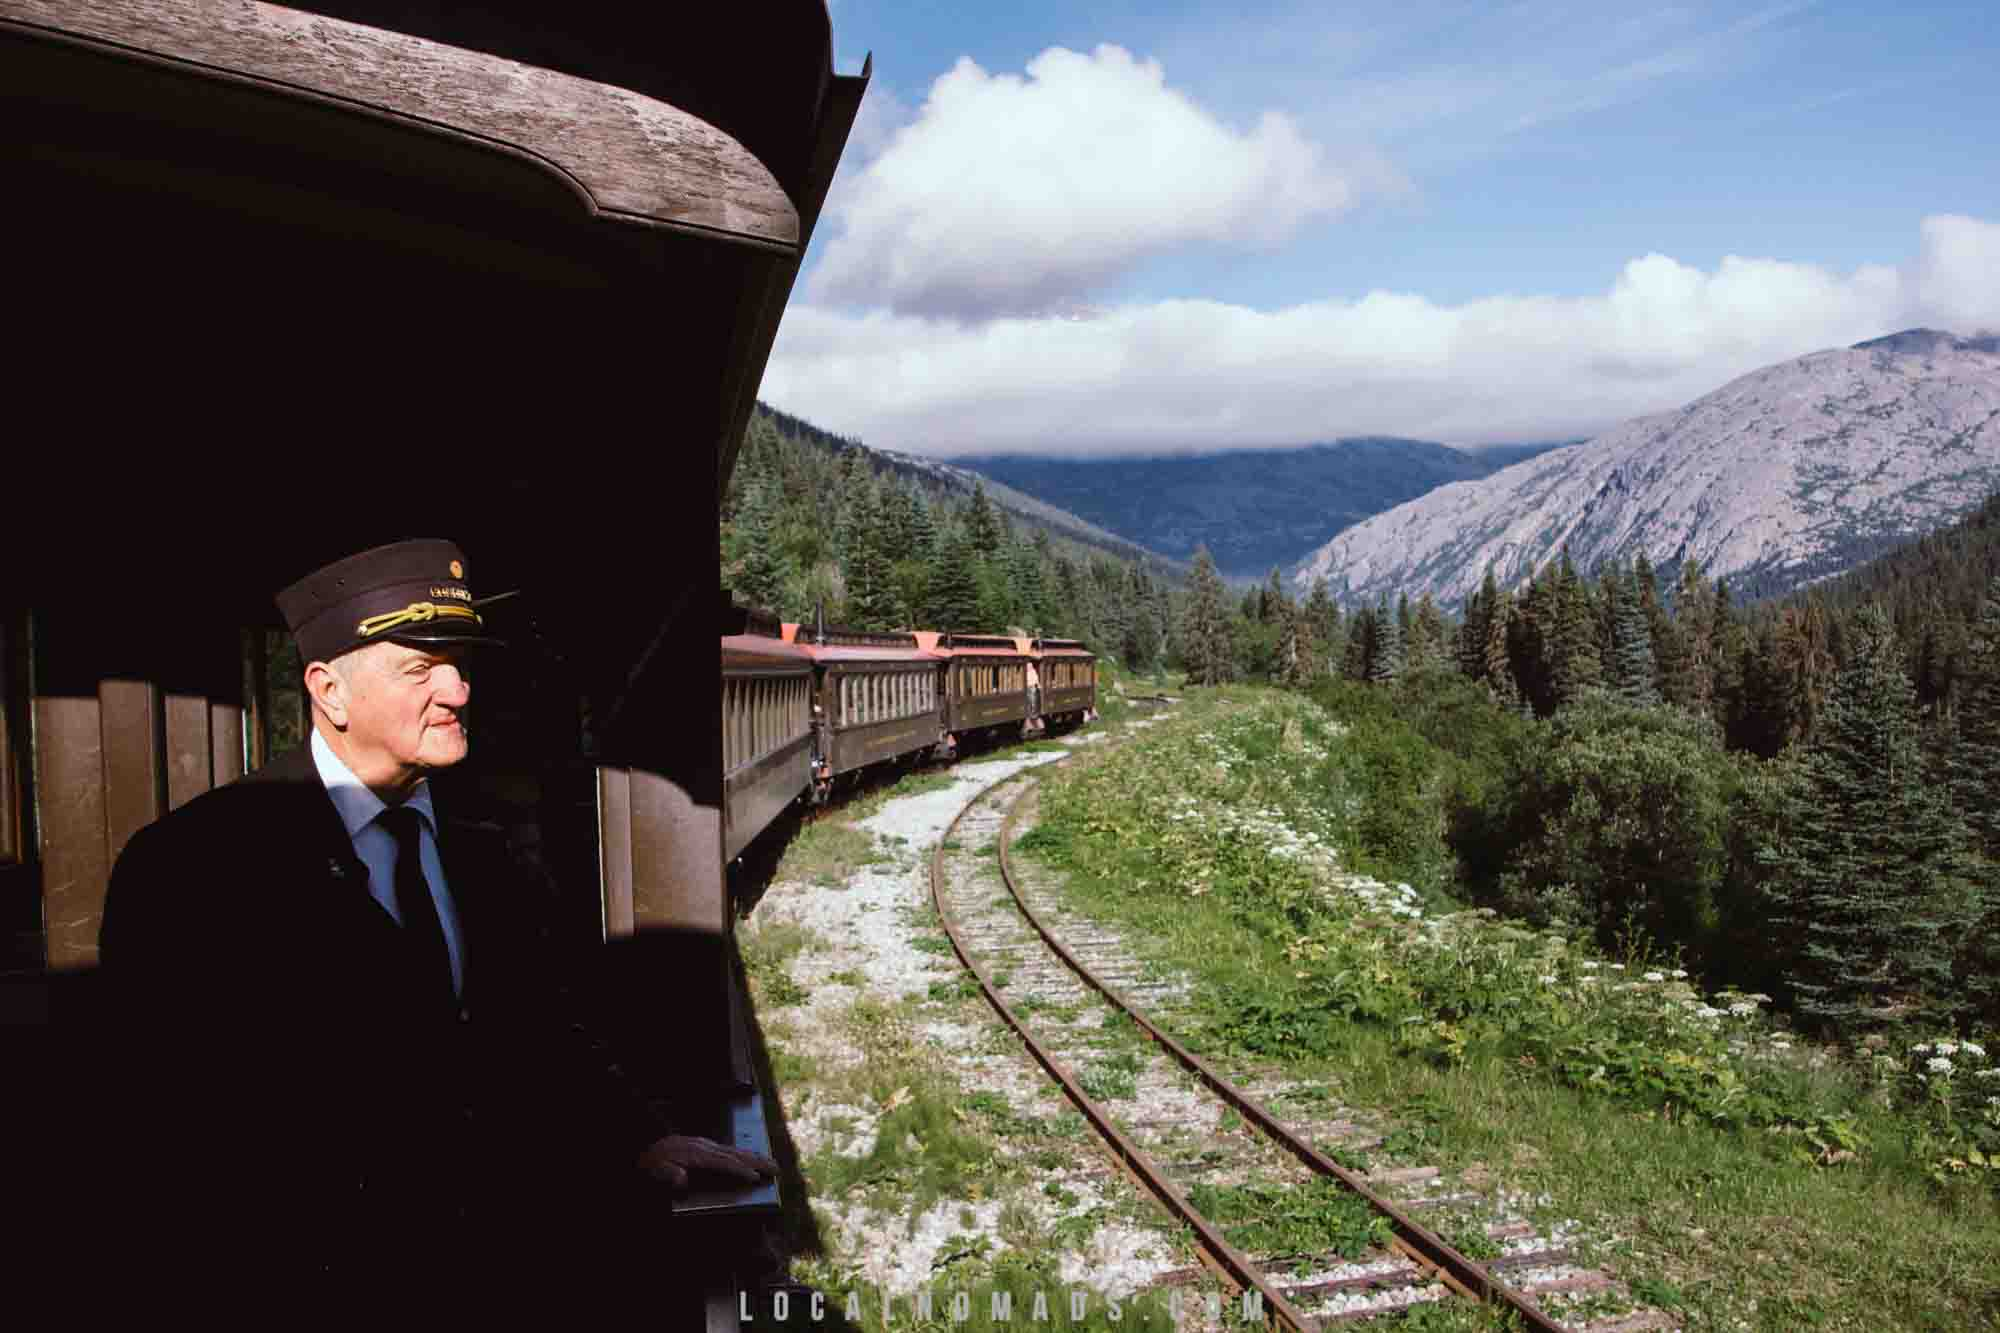 You can get a summer job in Alaska and Ride the White Pass & Yukon Route Train in Skagway, AK.